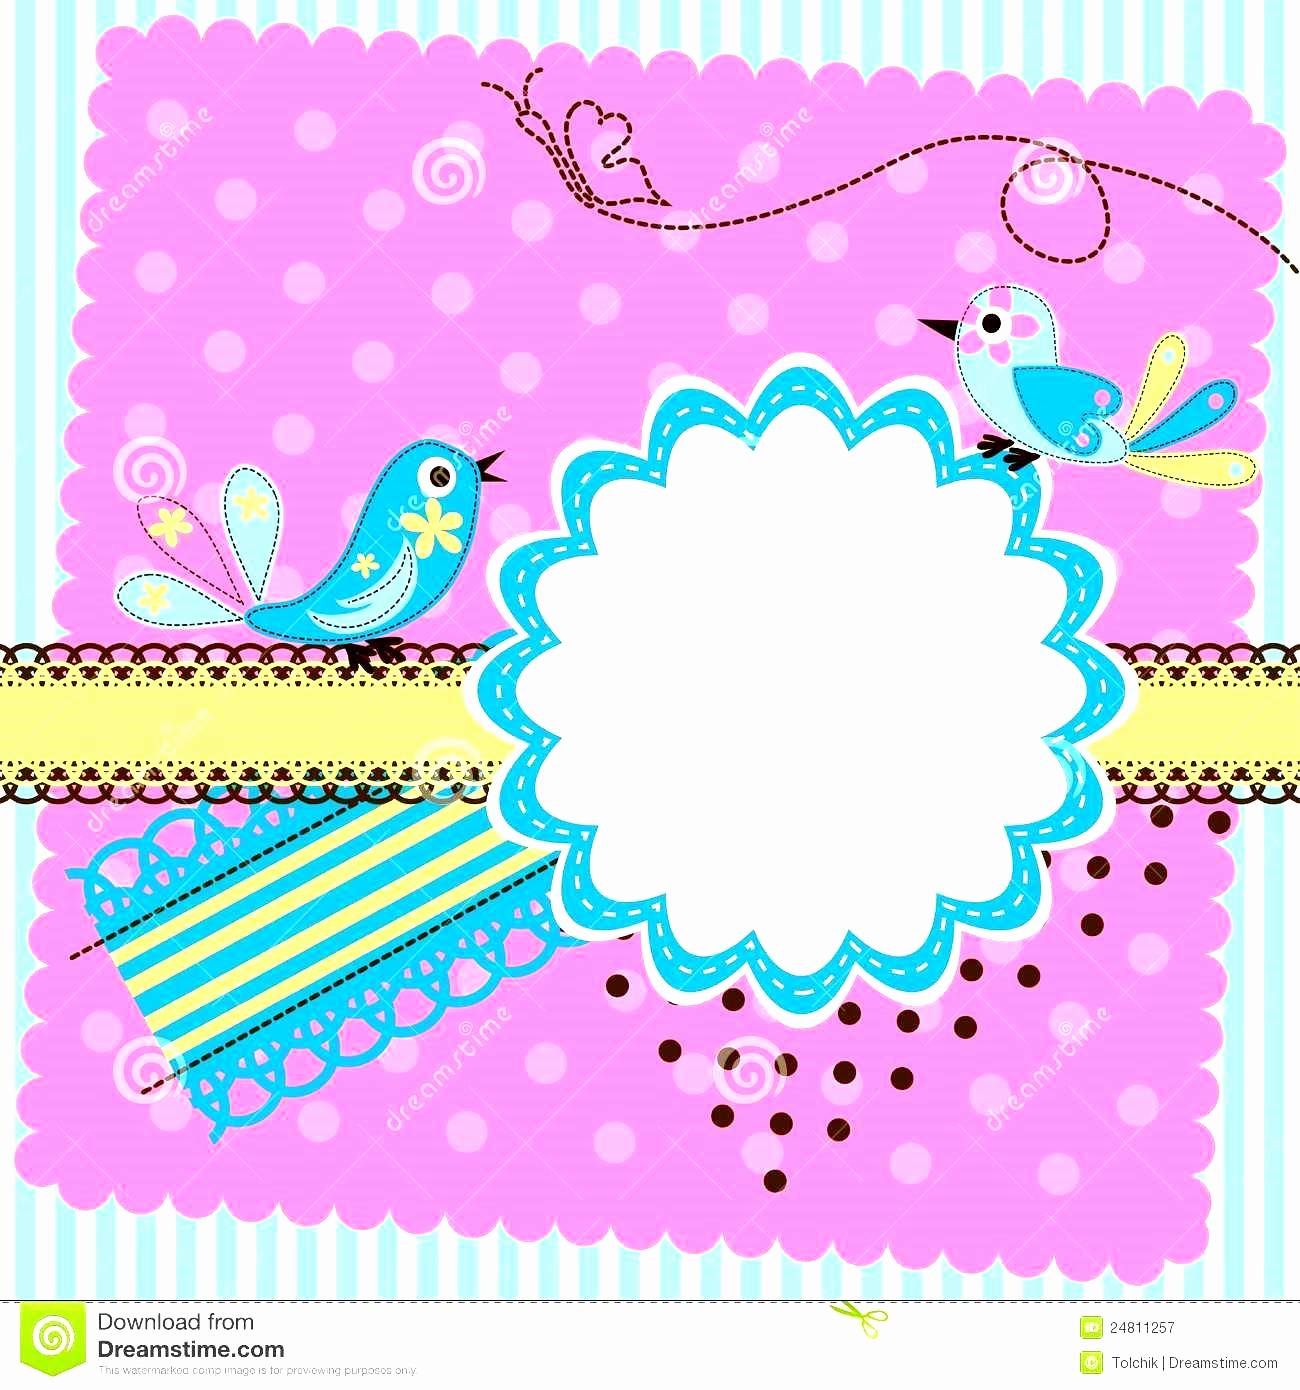 Free Birthday Card Templates Fresh Birthday Cards Templates Word